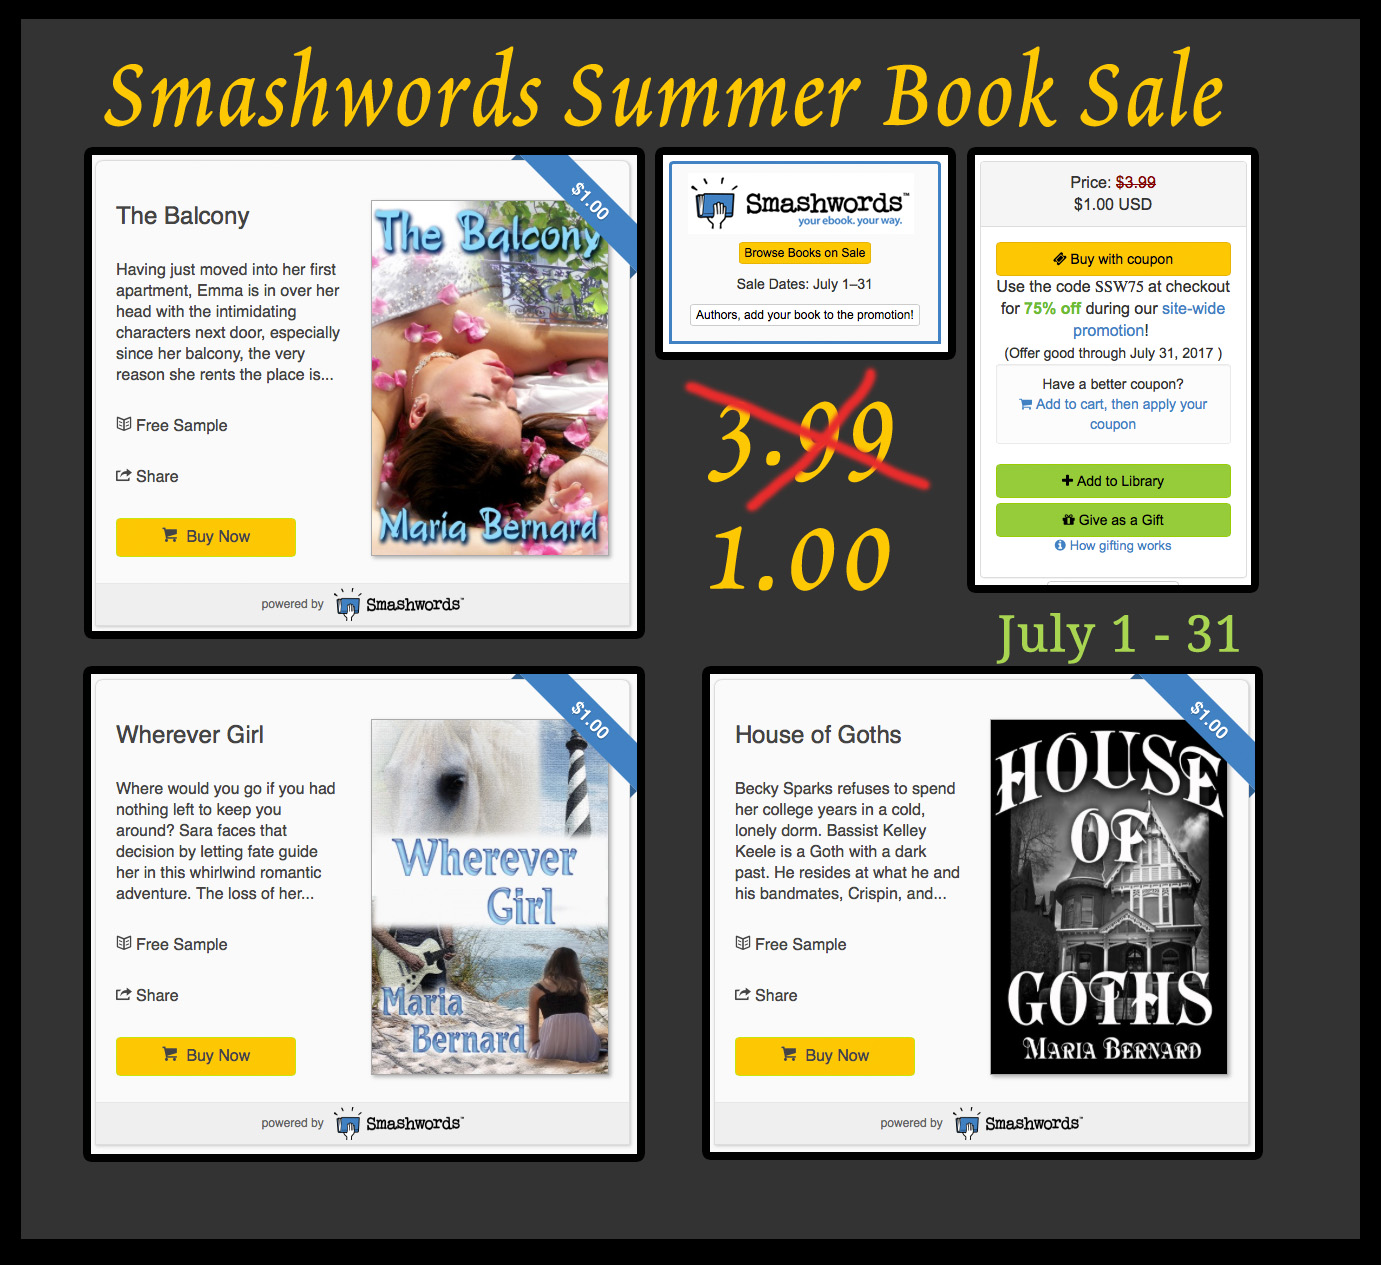 Maria Bernard Books on Smashwords